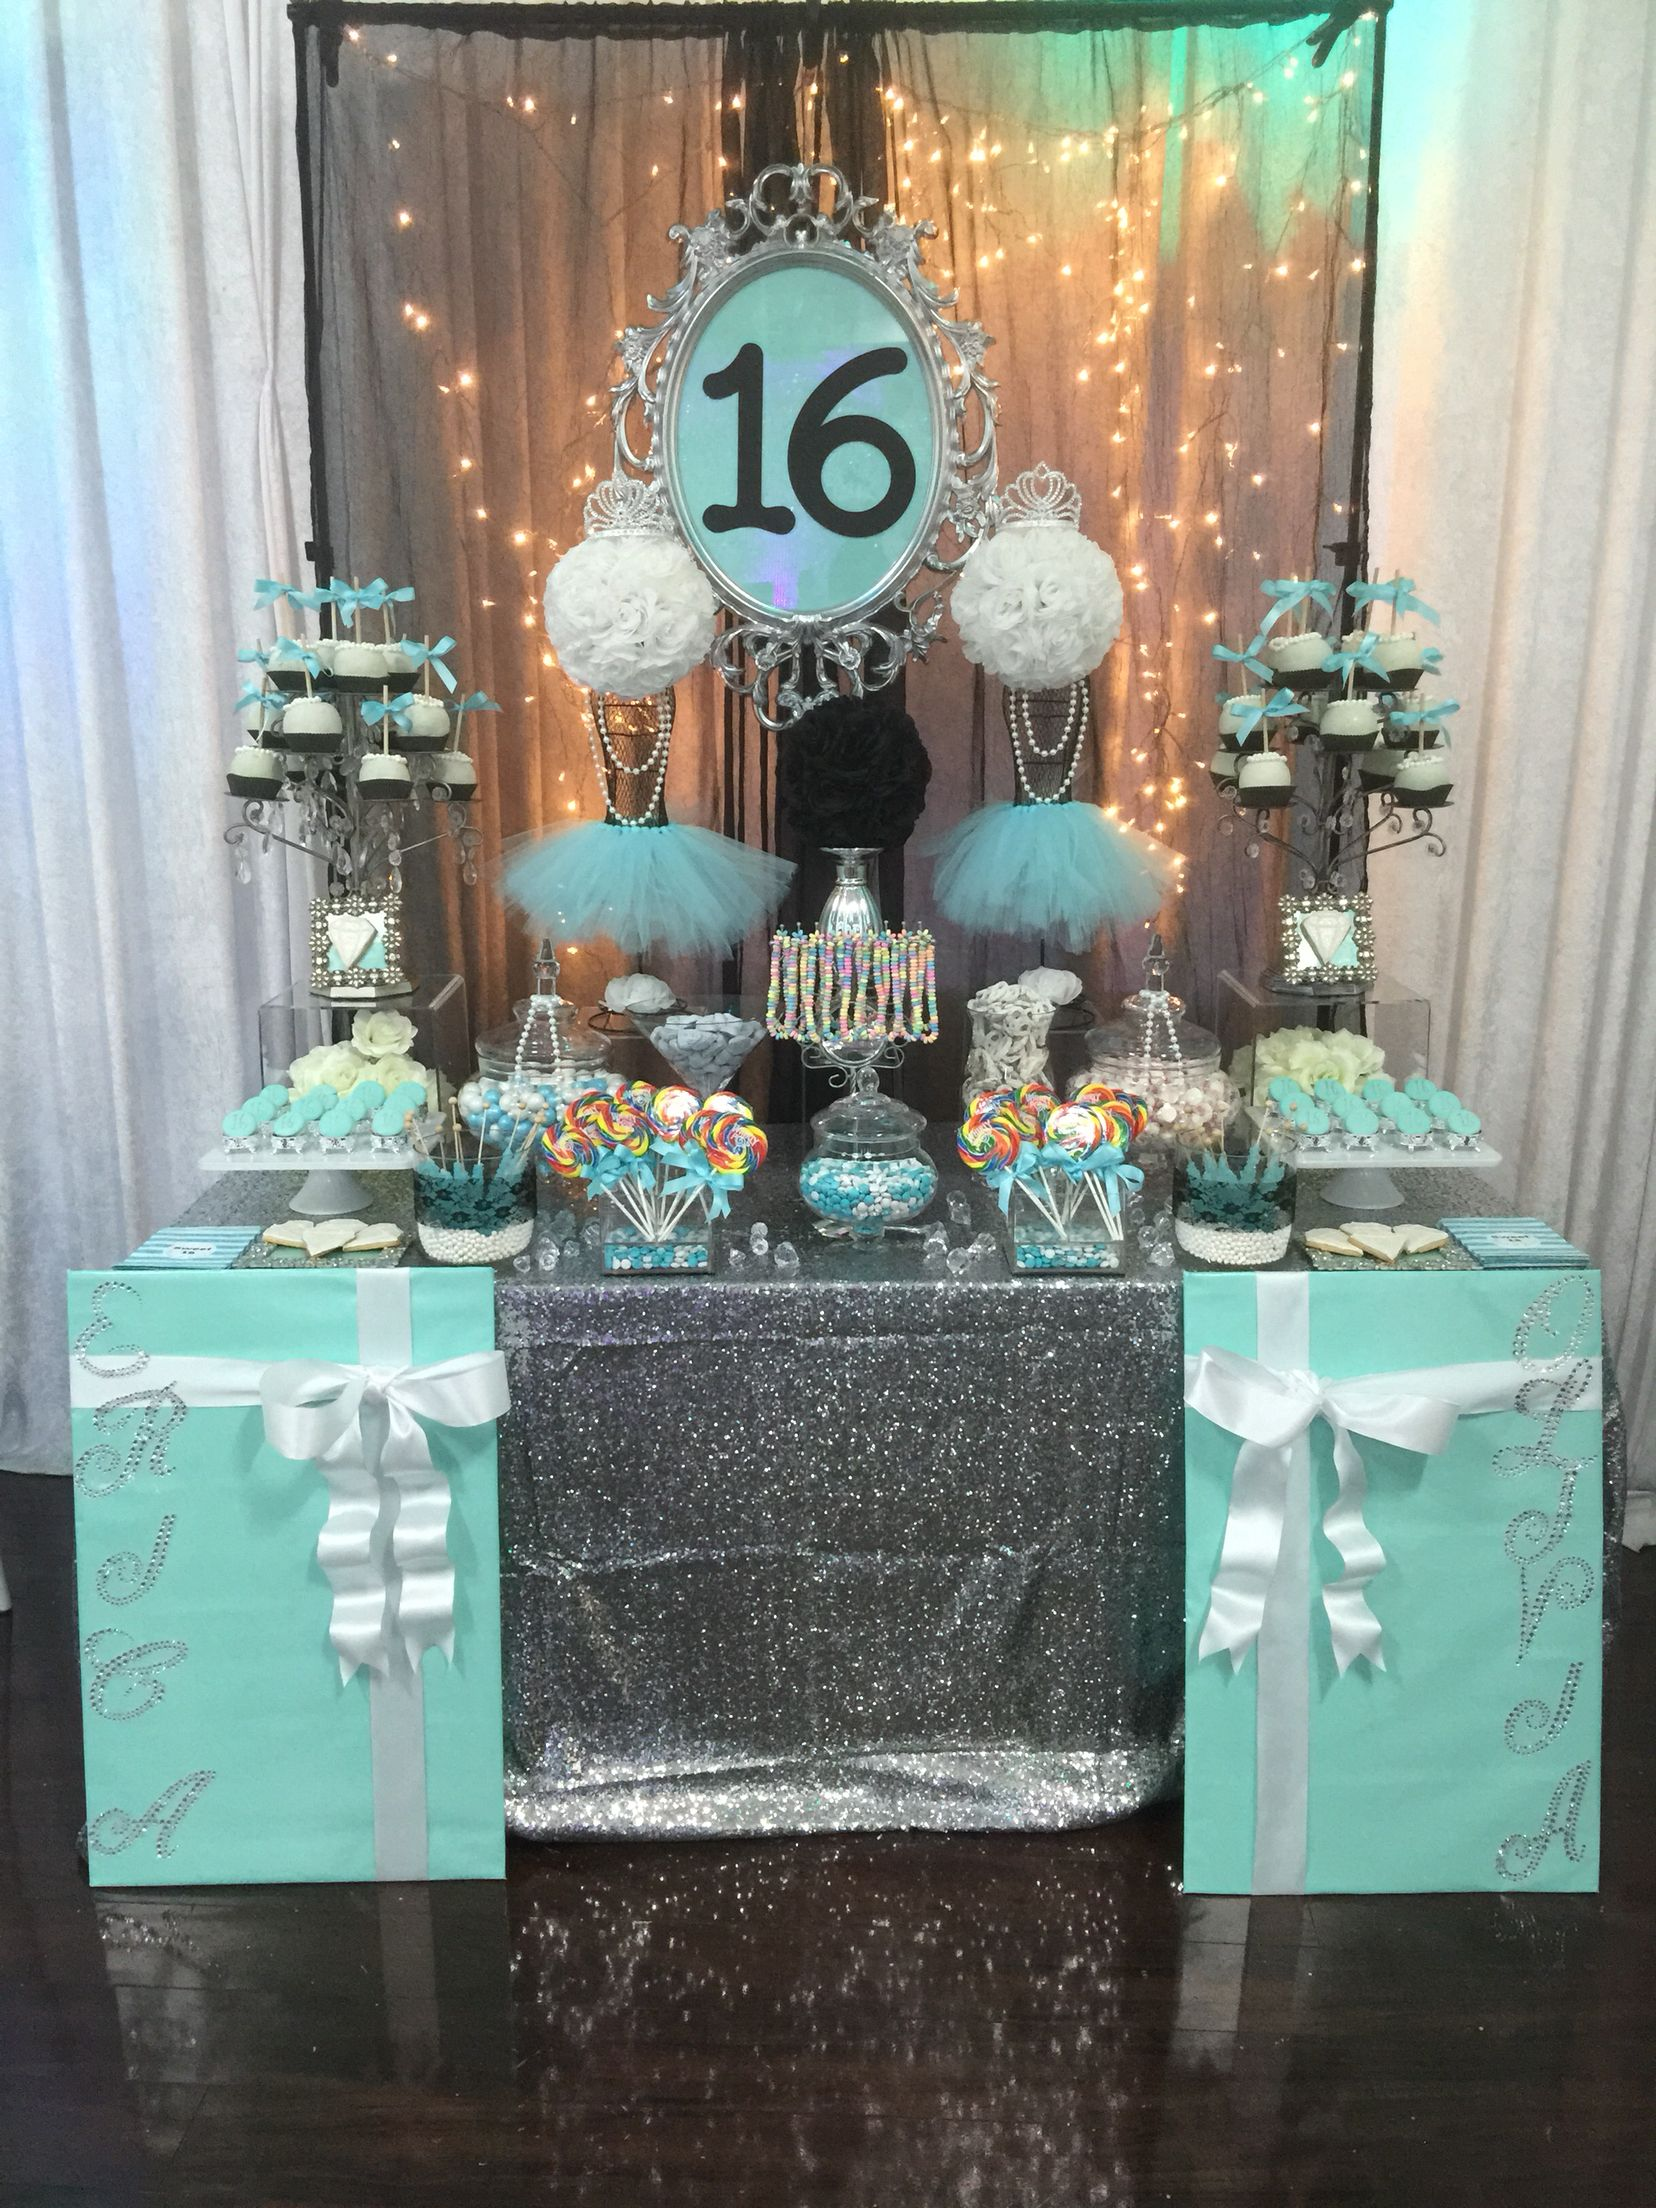 Decoraciones Gramar Turquoise White And Black With Silver Accents Candy